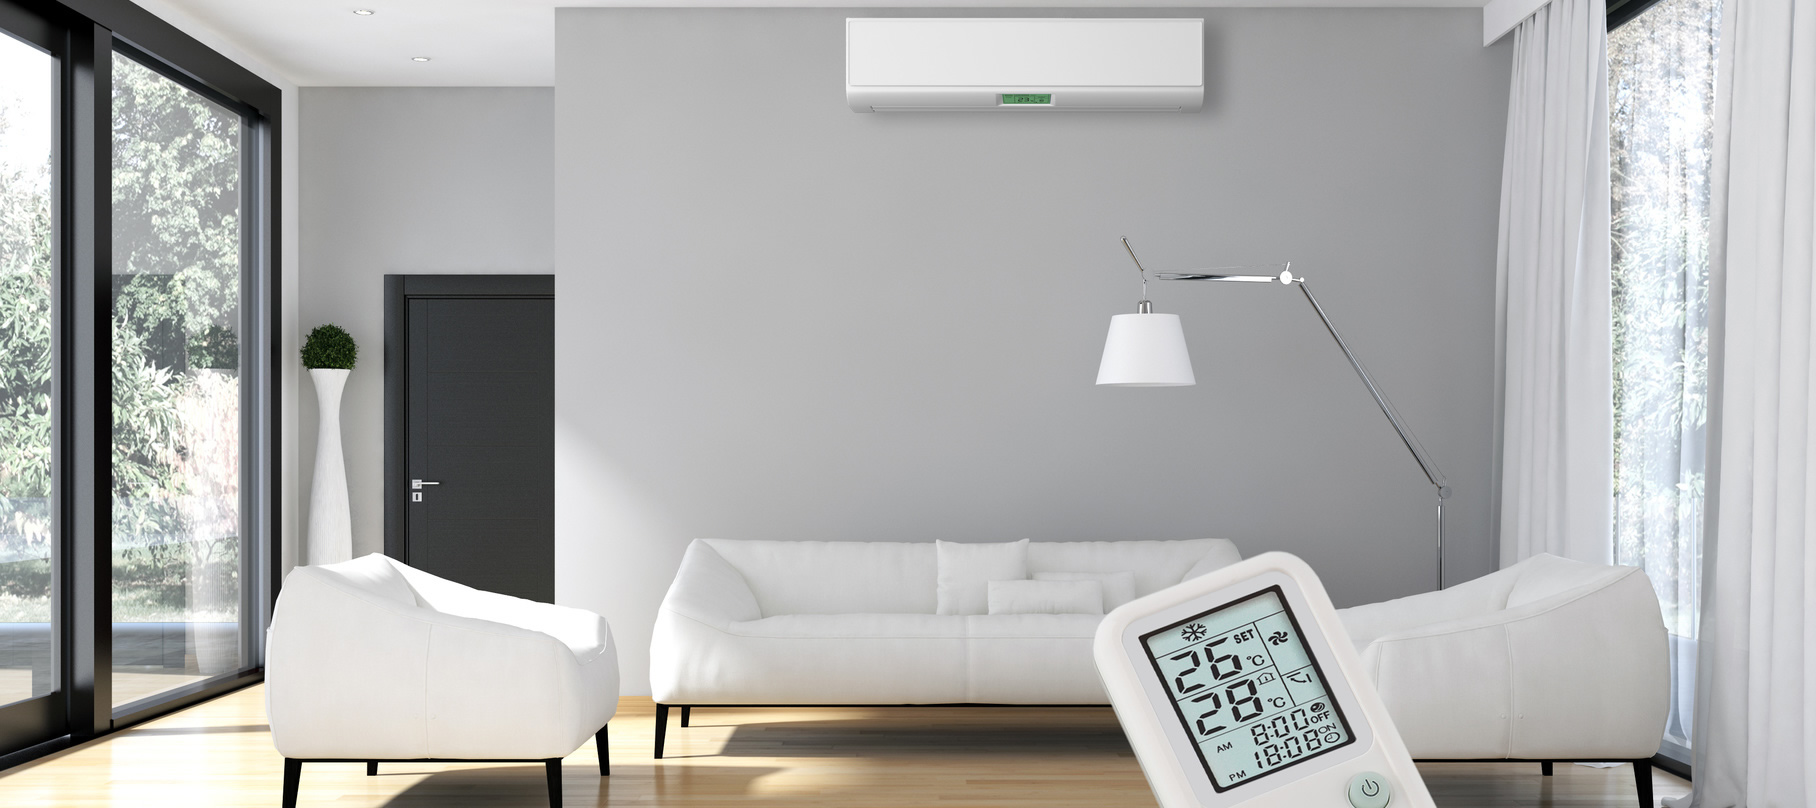 Ductless Home Heating